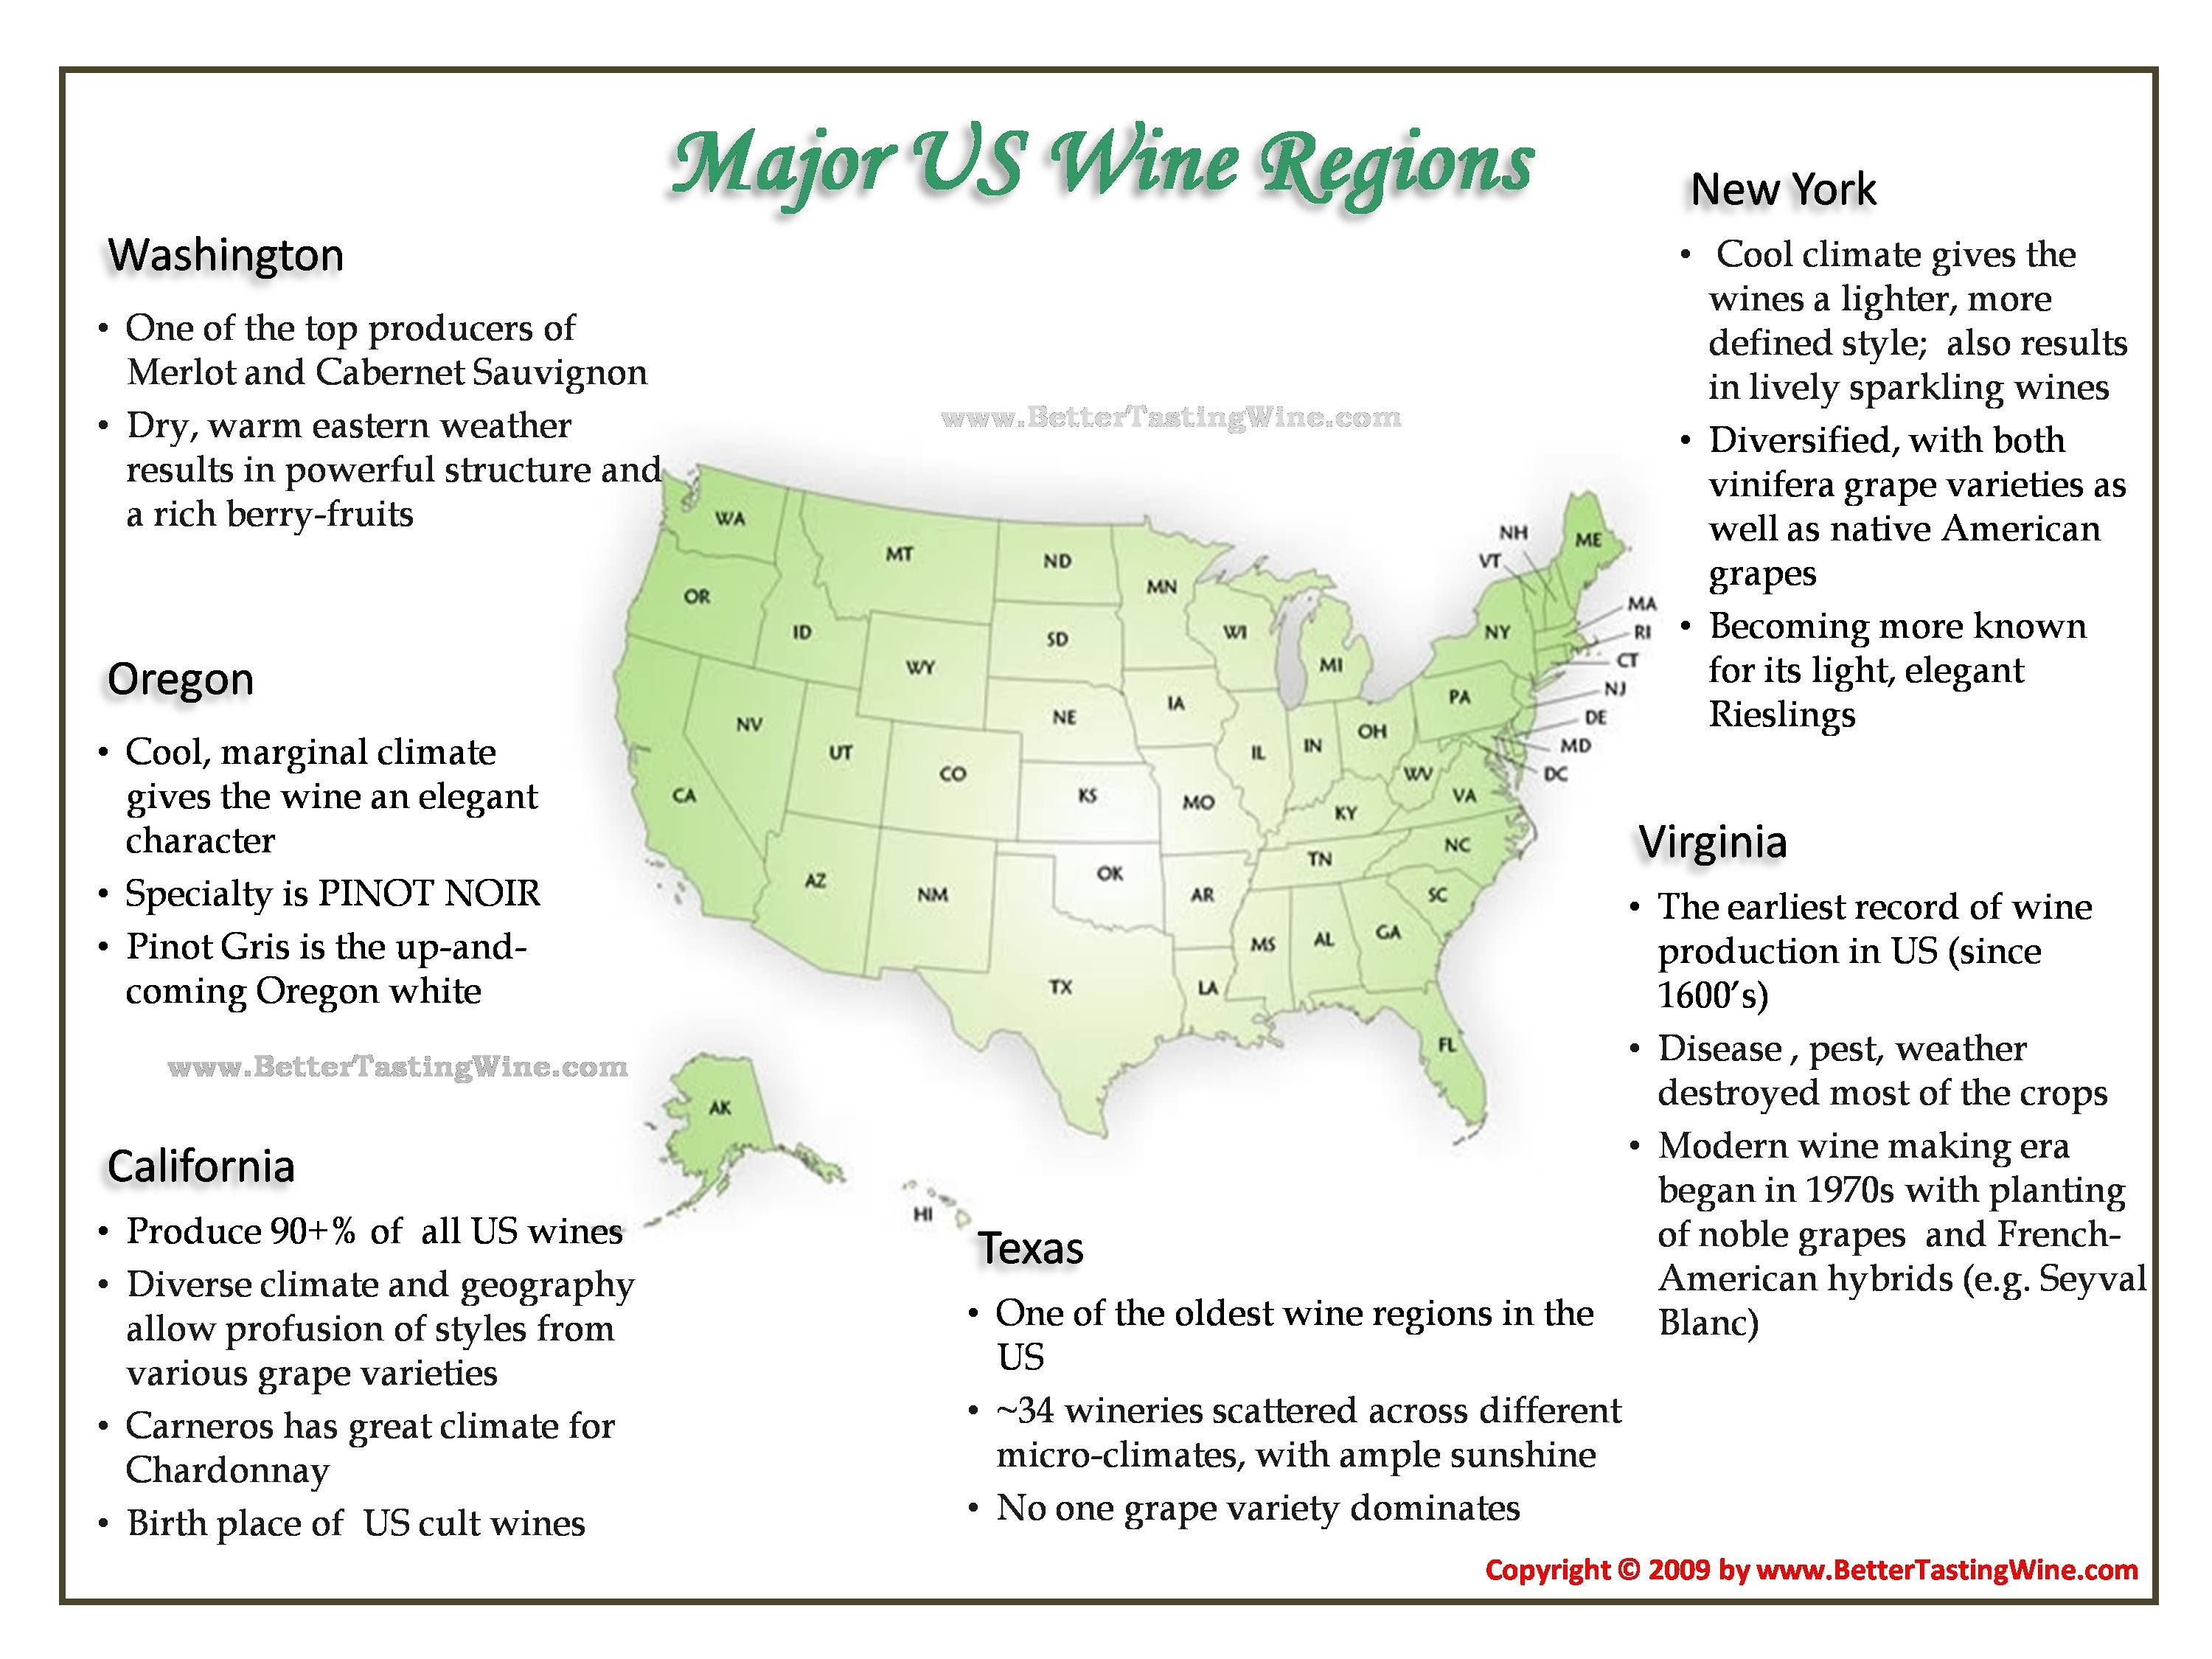 US Wine Regions Le Journal Du VinLiban Pinterest Wine - Us wine regions map